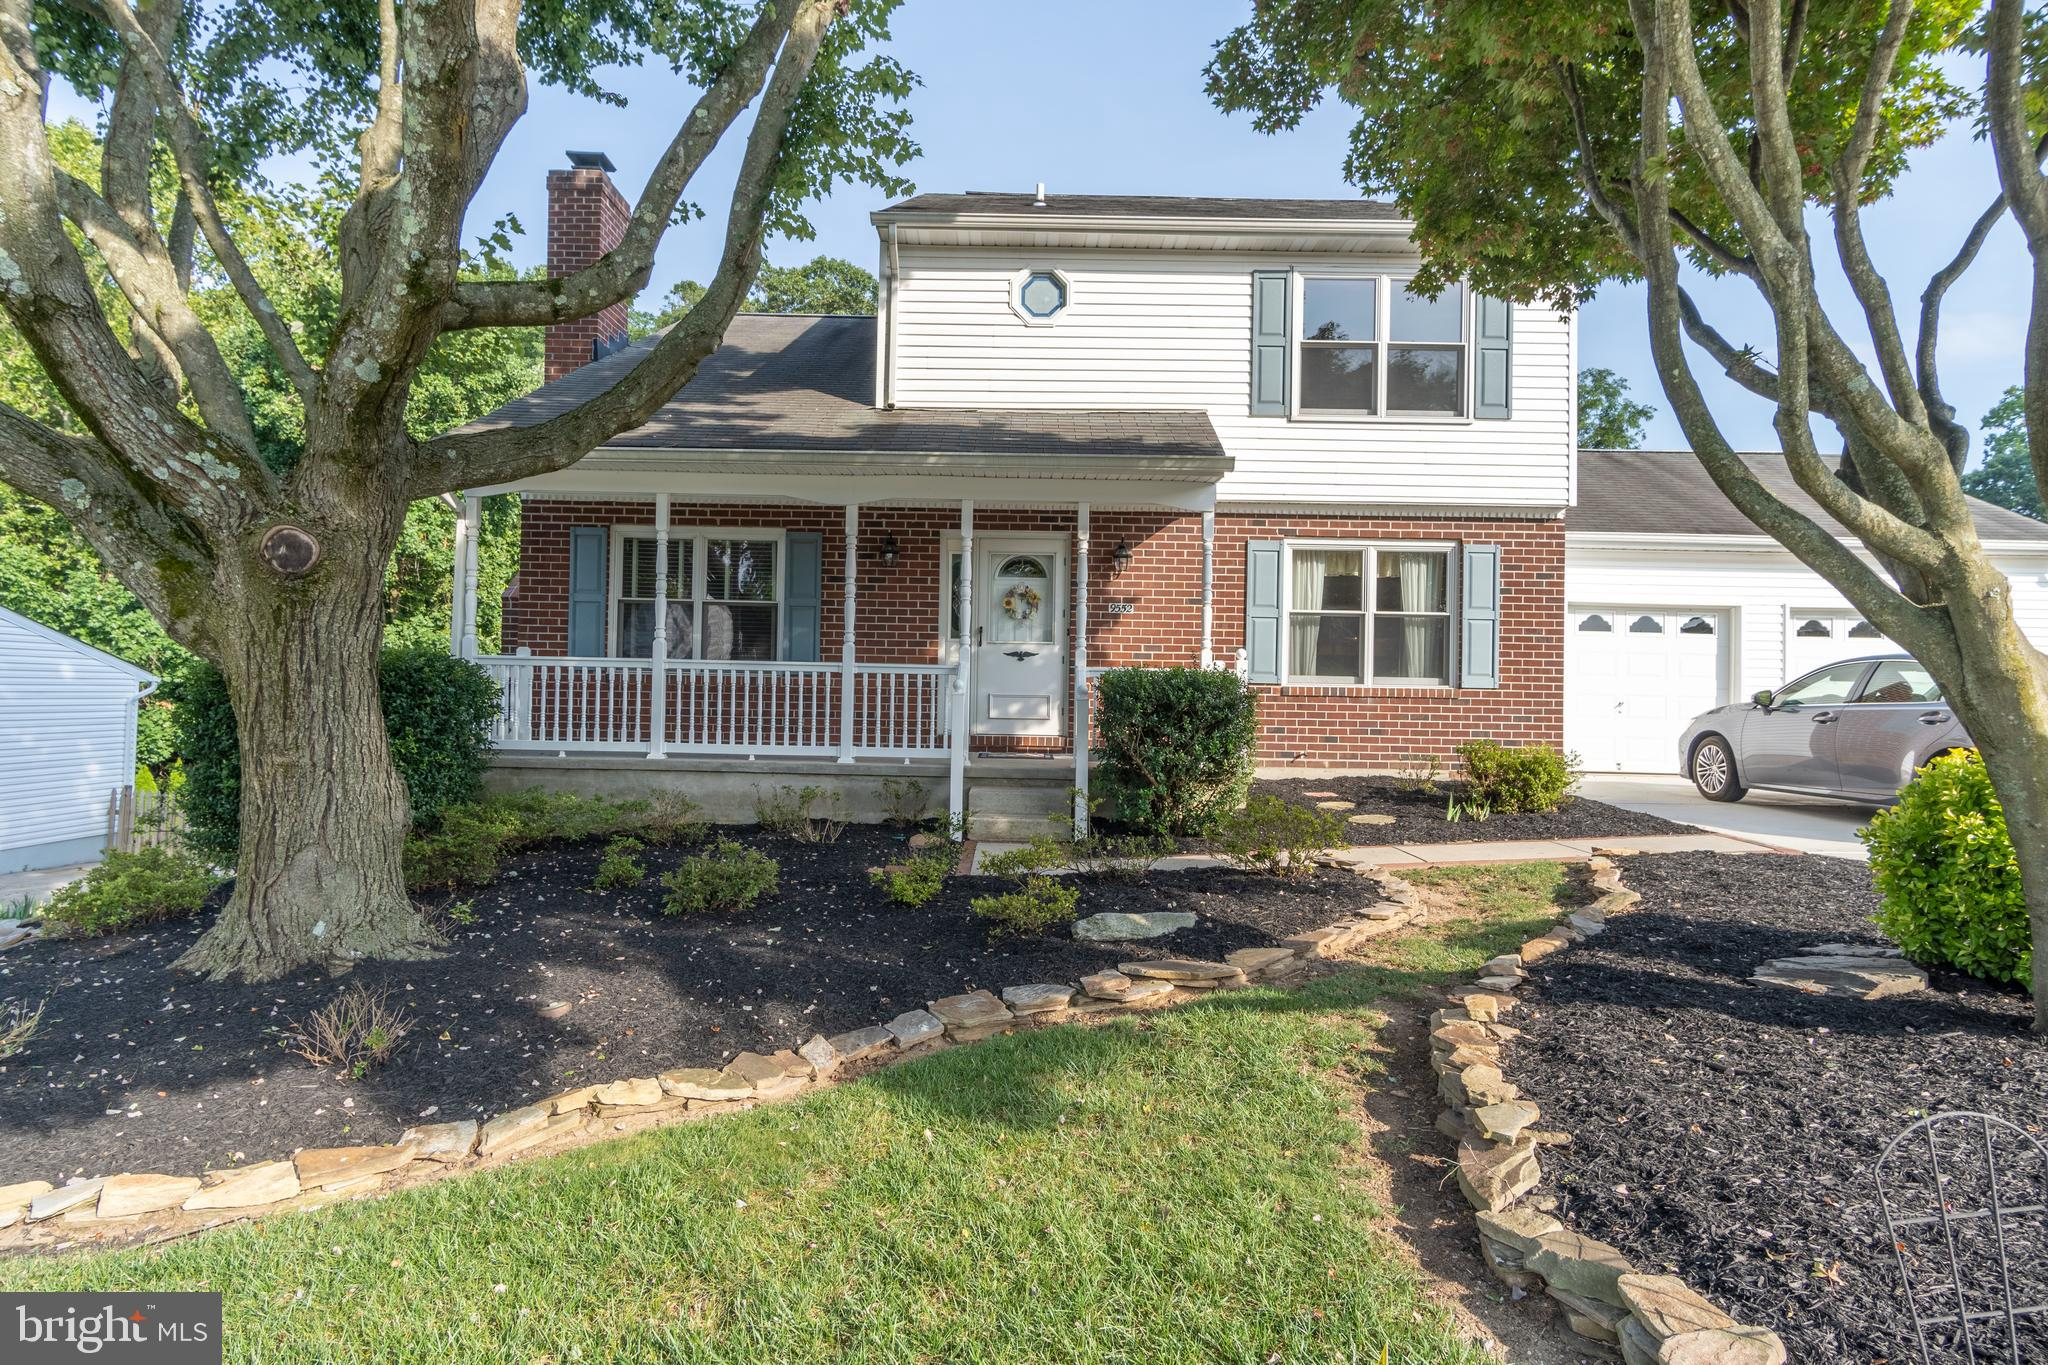 9552 GUNHILL CIRCLE, BALTIMORE, MD 21236